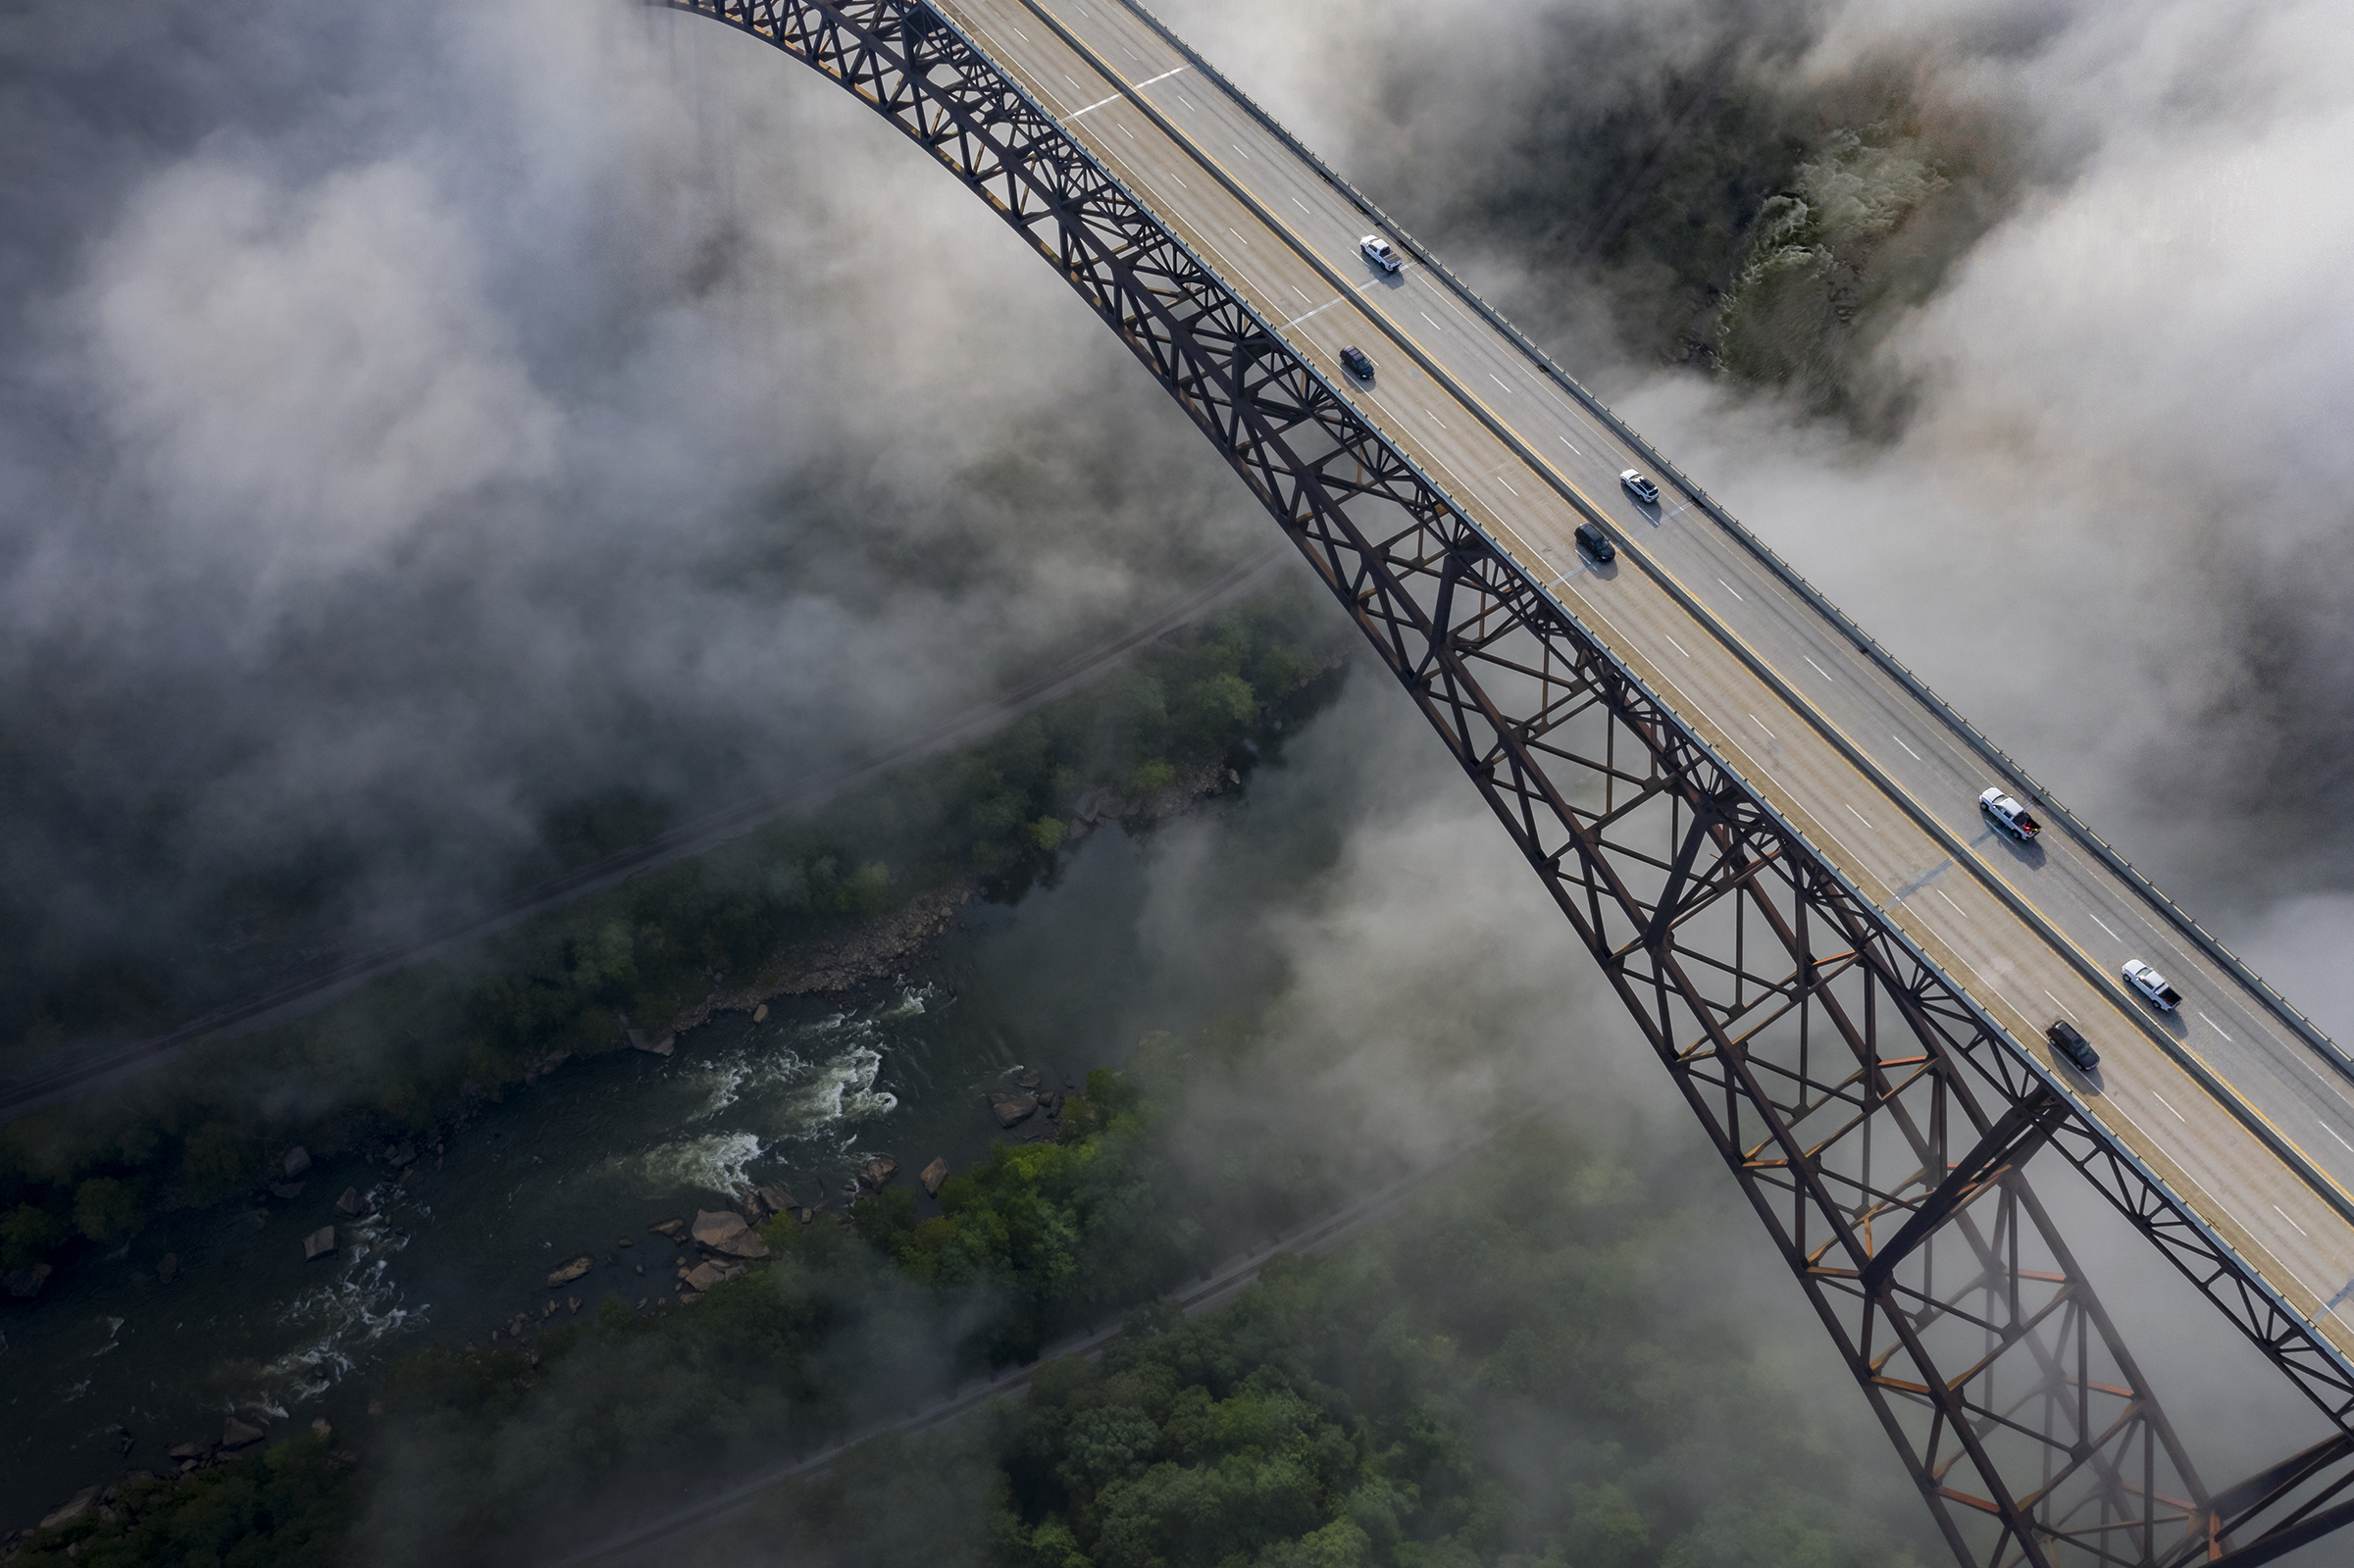 The New River Gorge Bridge spans the canyon 876 feet above the river. Hiking and mountain biking trails and railroad tracks cross the rugged Appalachian forest surrounding the gorge. MUST CREDIT: Jay Young/Adventures on the Gorge